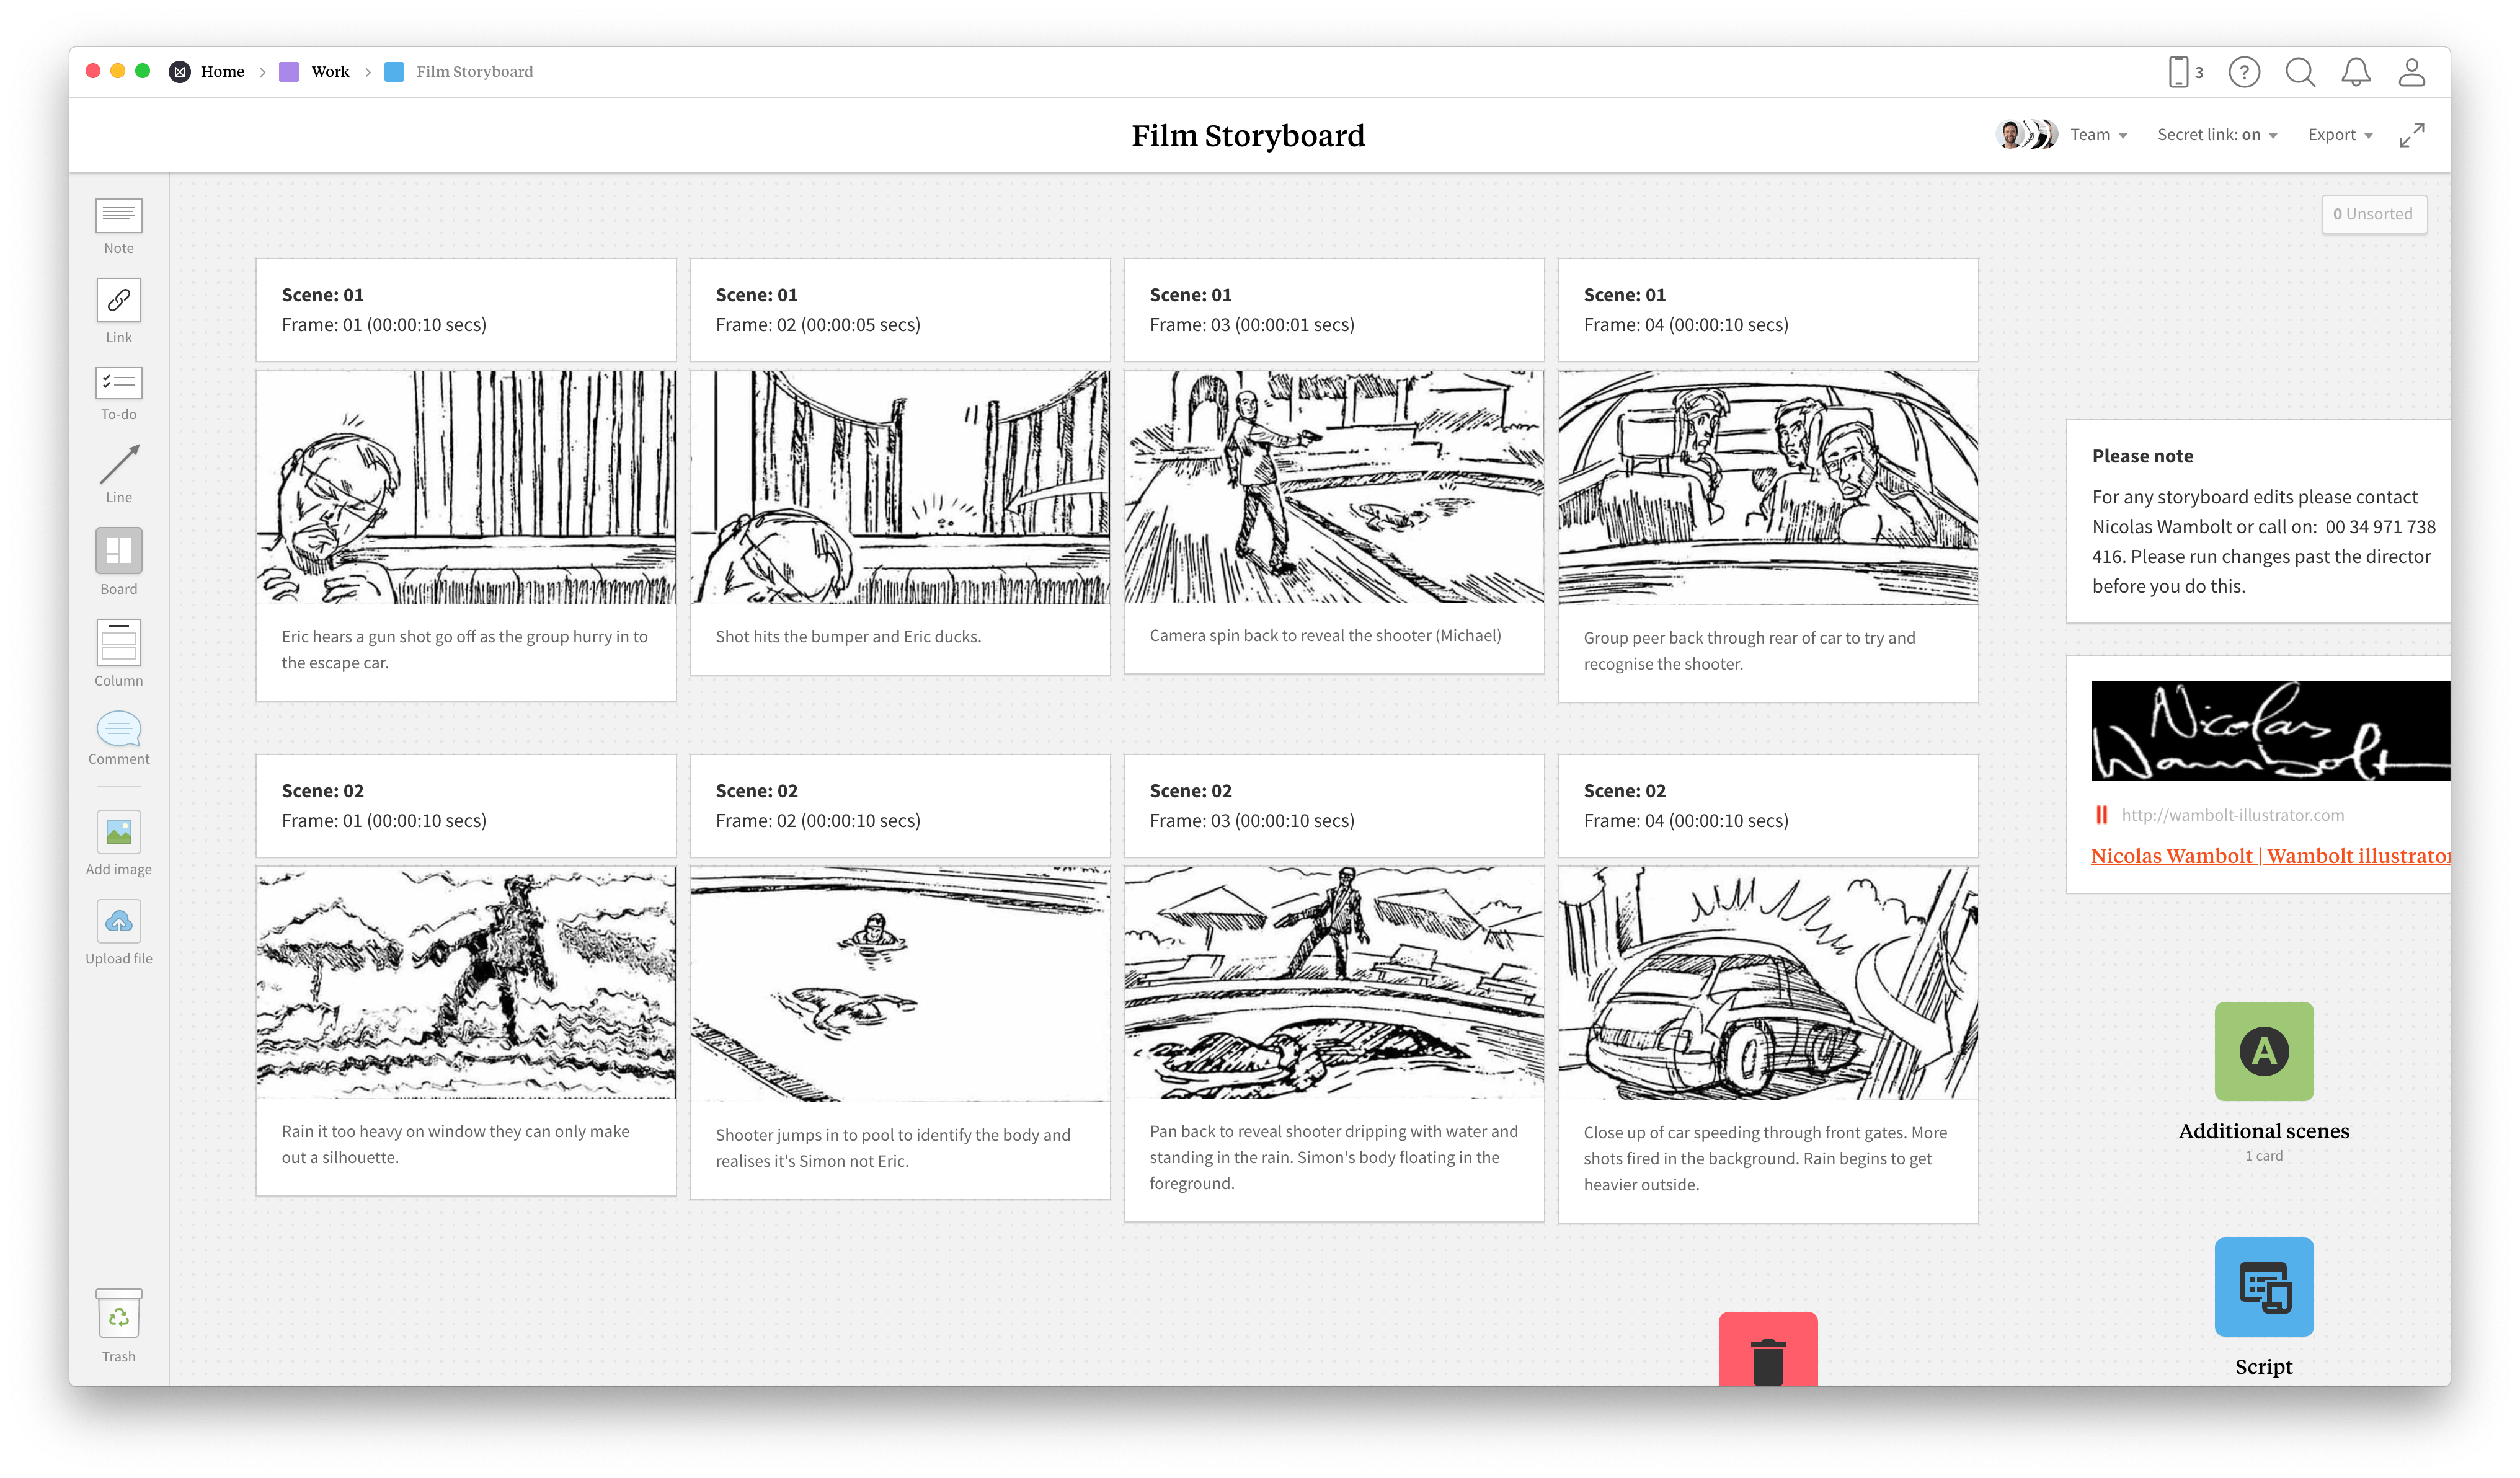 Completed Filmmaking Storyboard template in Milanote app